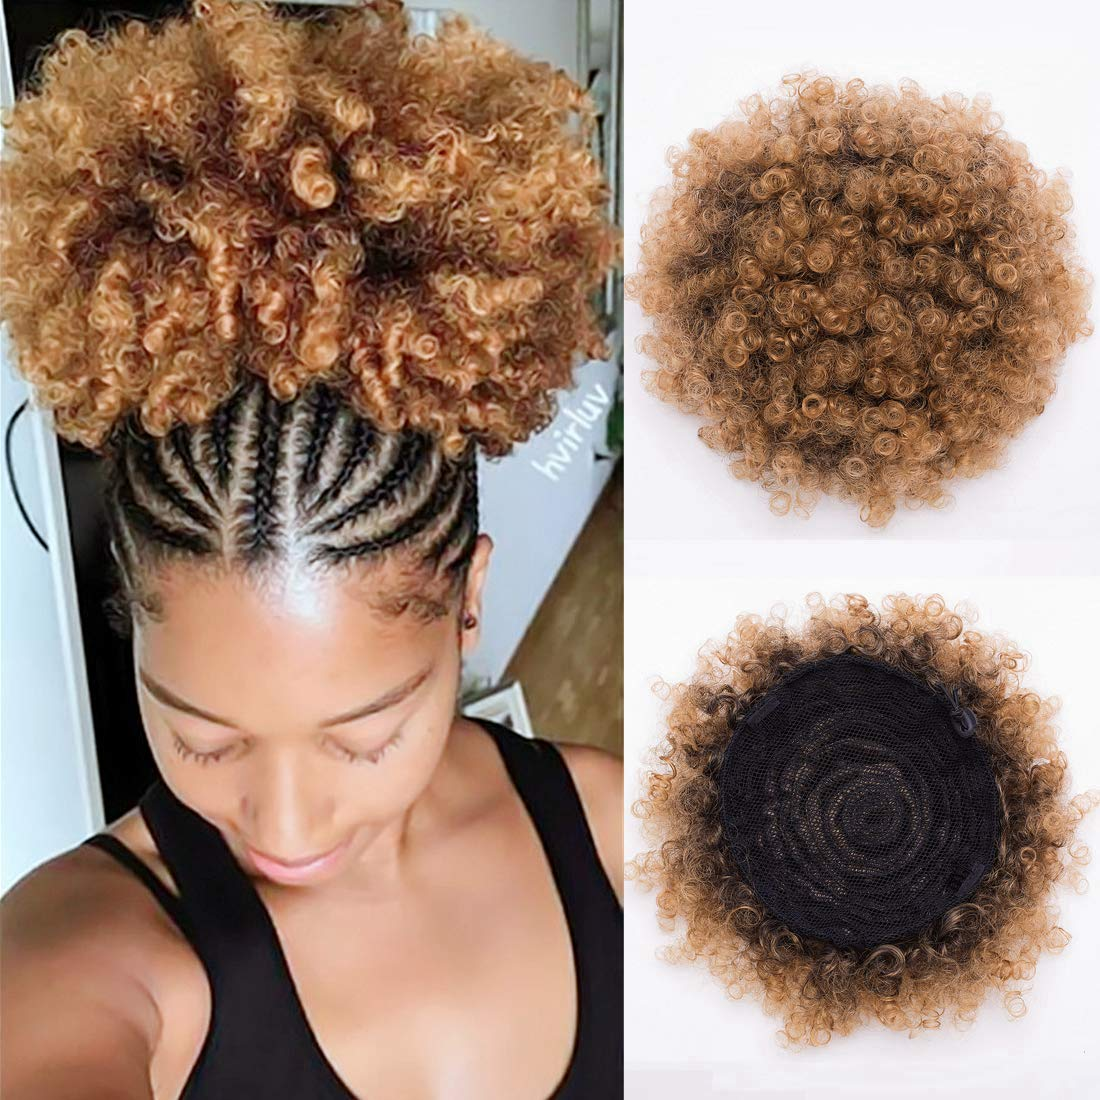 Beira Synthetic Afro Puff Drawstring Ponytail Short Kinky Curly Hair Bun Extension Donut Chignon Hairpieces Wig Updo Hair Extensions With Two